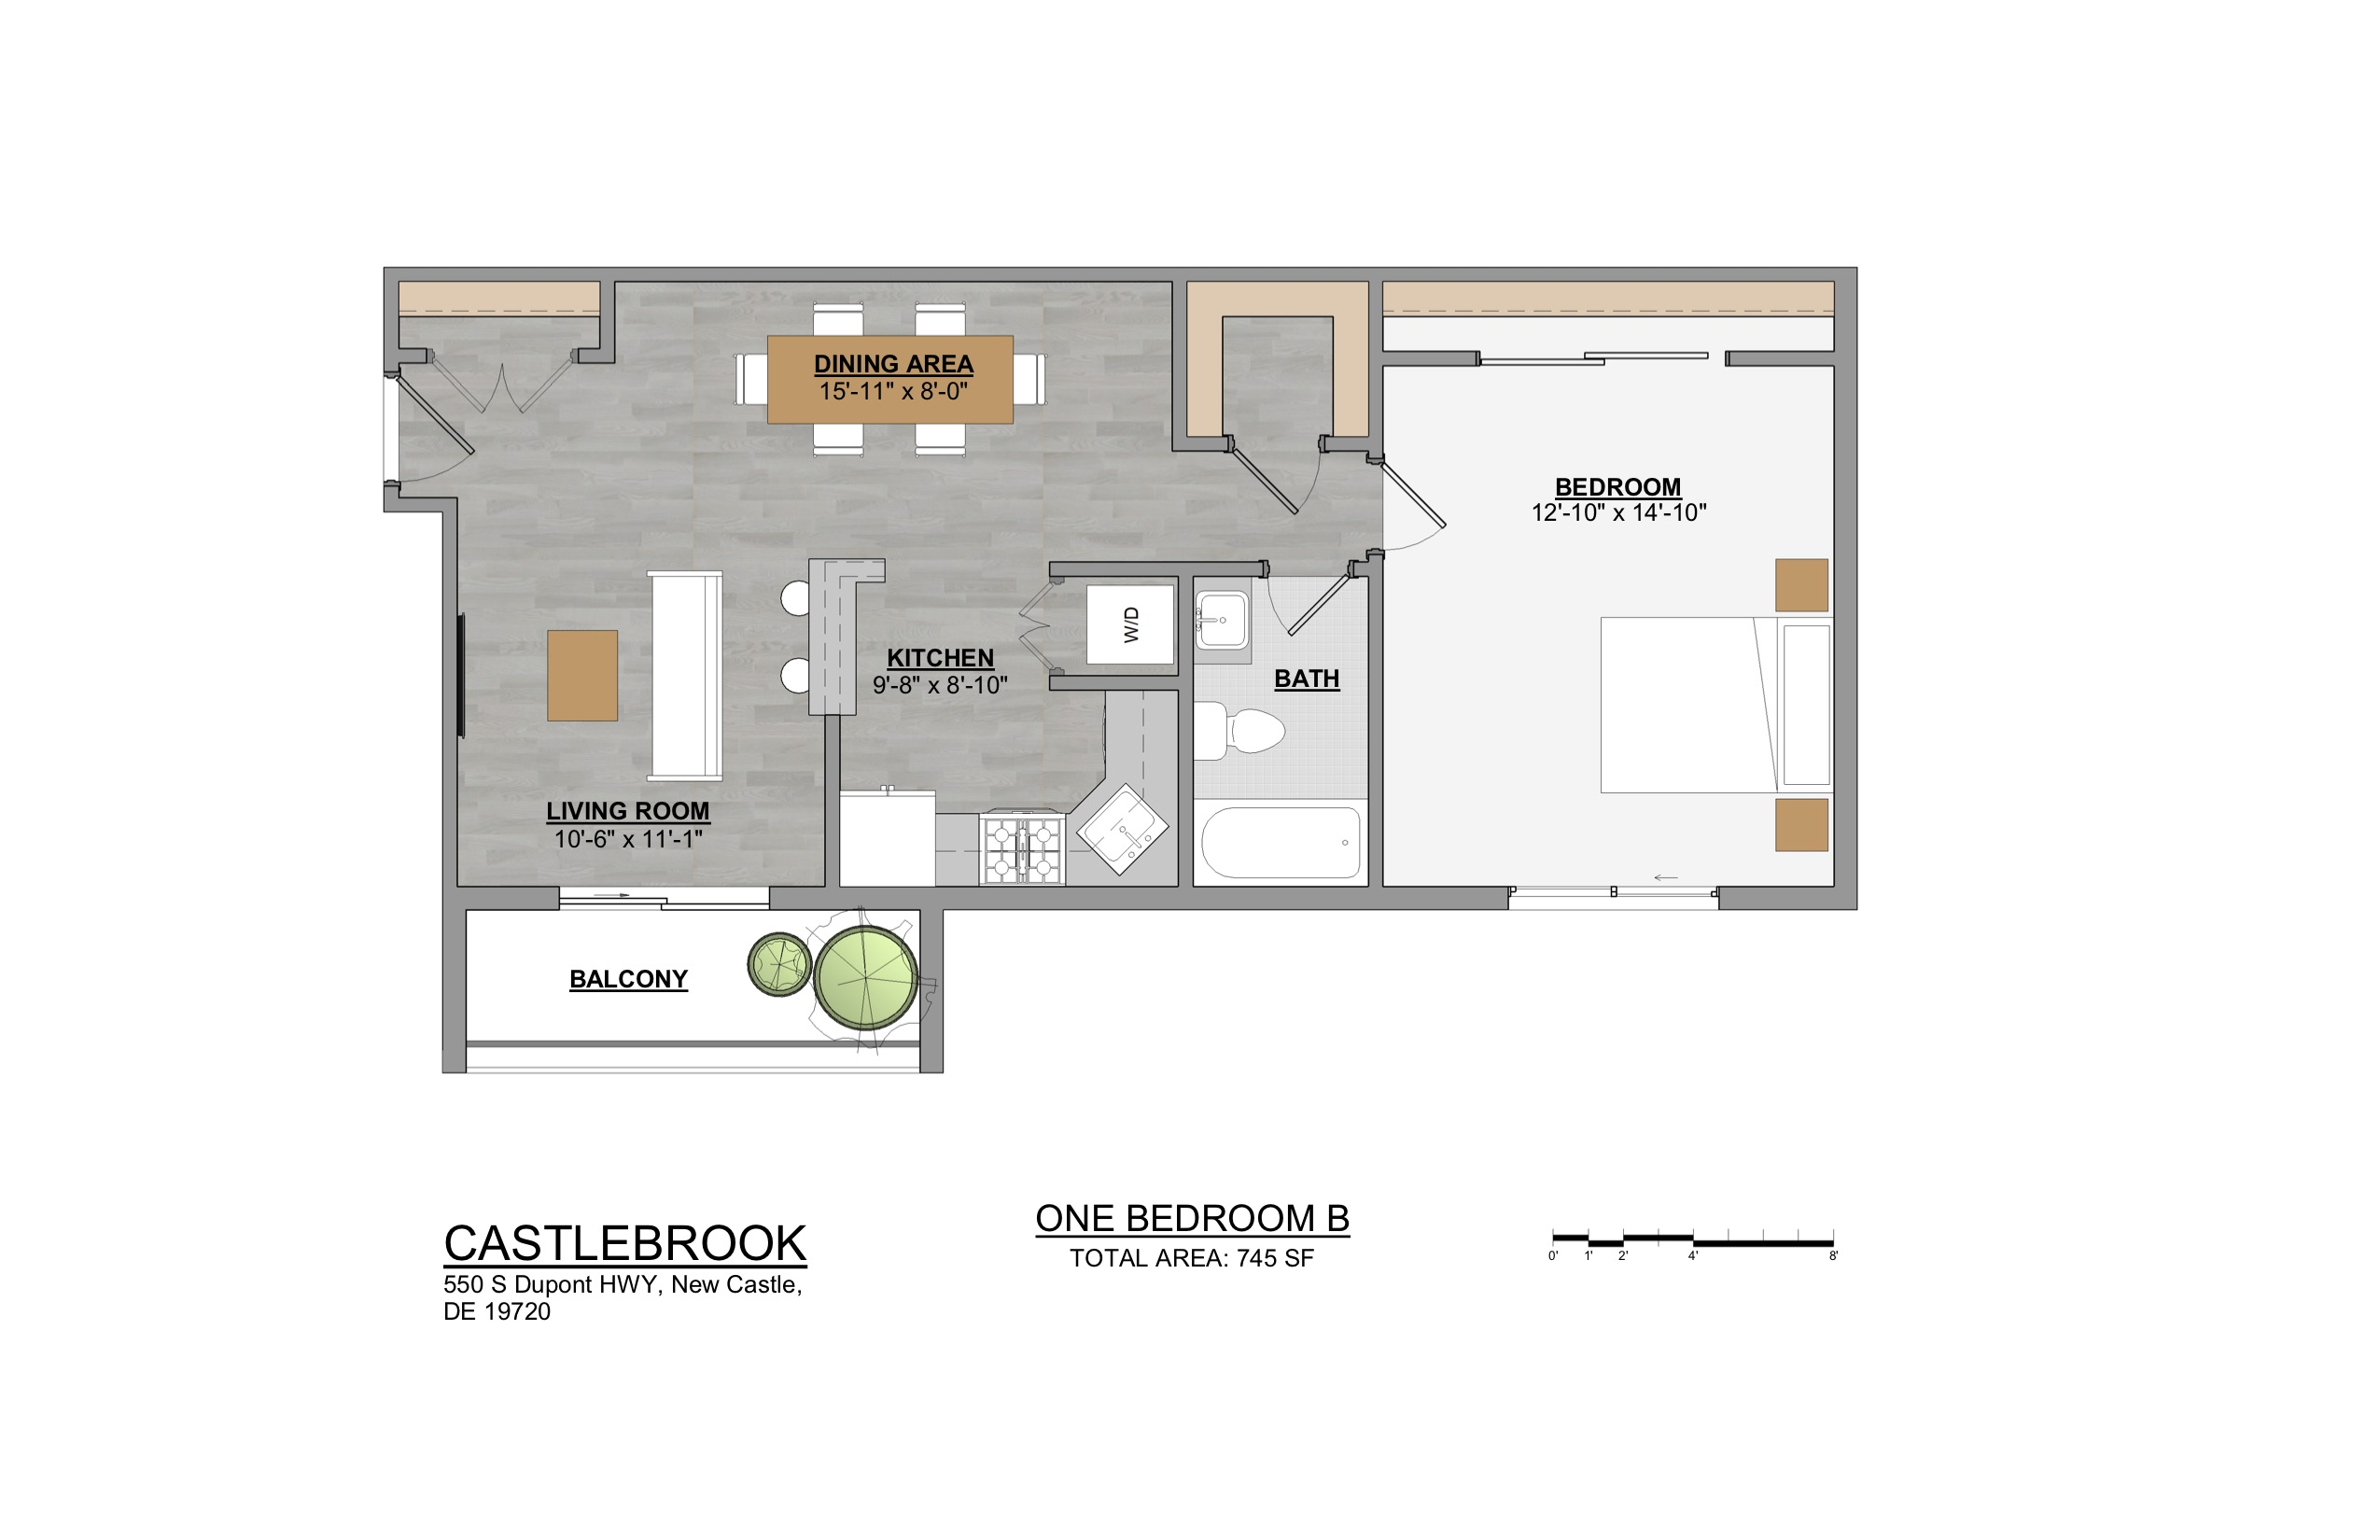 Castlebrook Apartments 1 Bedroom B